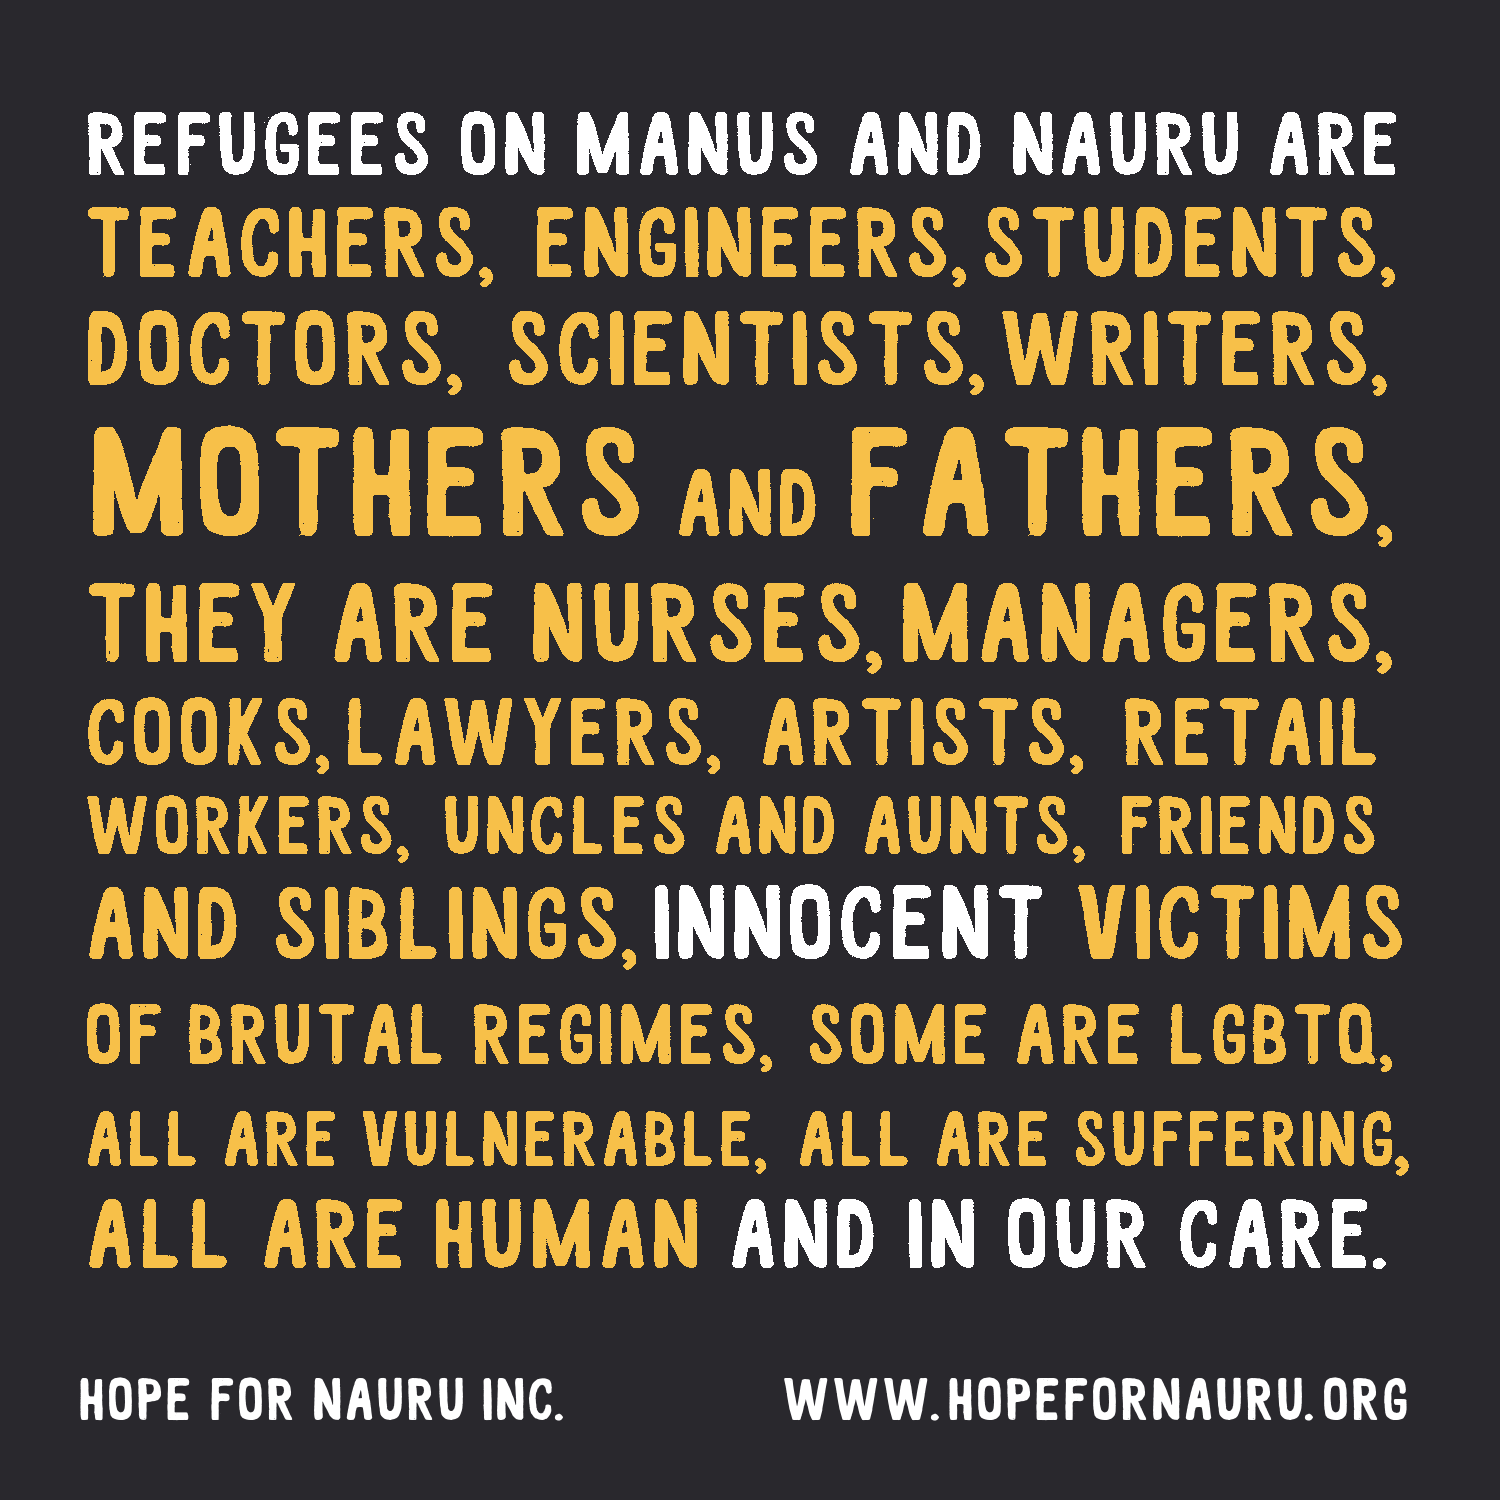 refugees-are-teachers.1.png